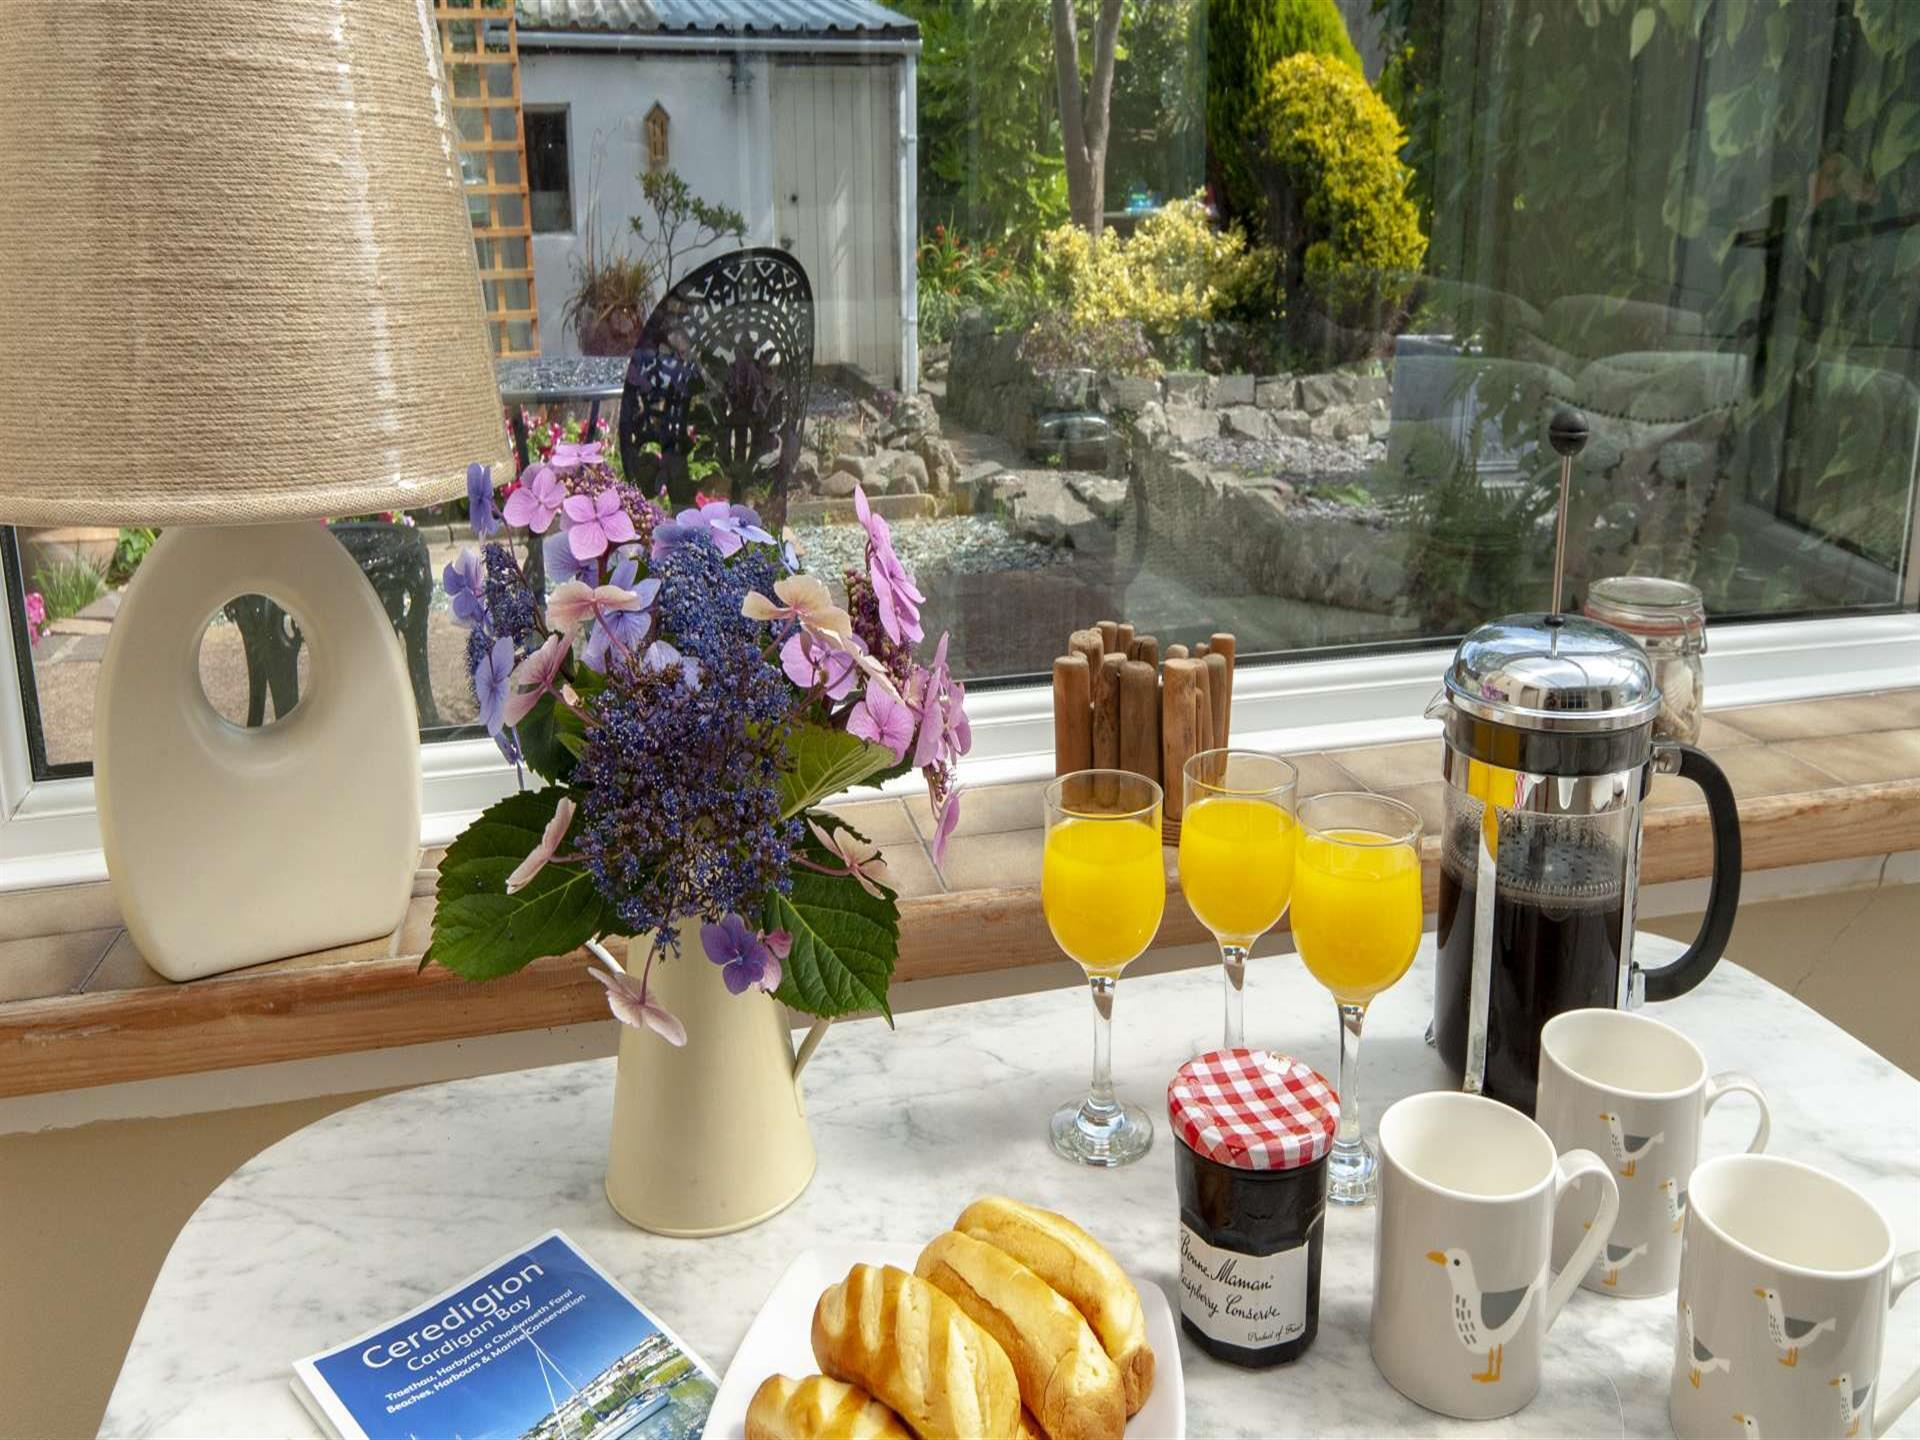 Breakfast in Aberaeron holiday home conservatory